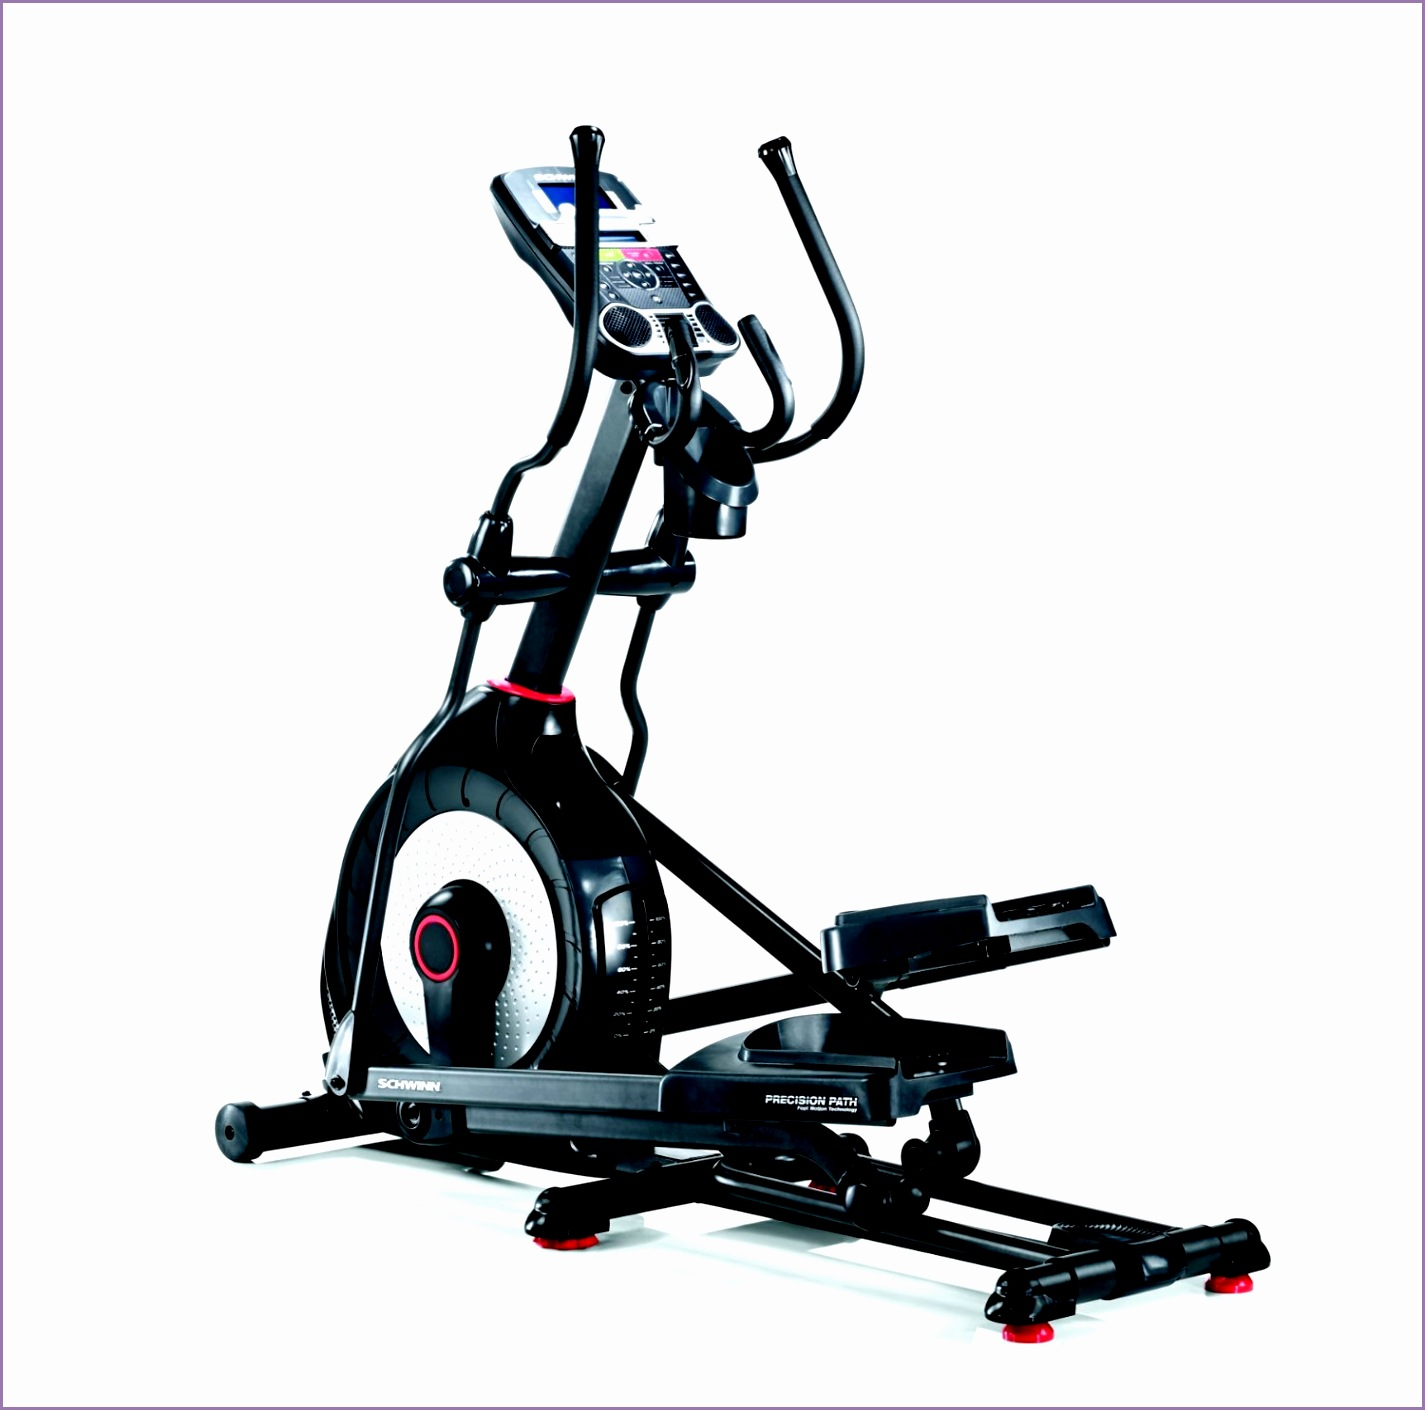 schwinn 470 elliptical trainer review